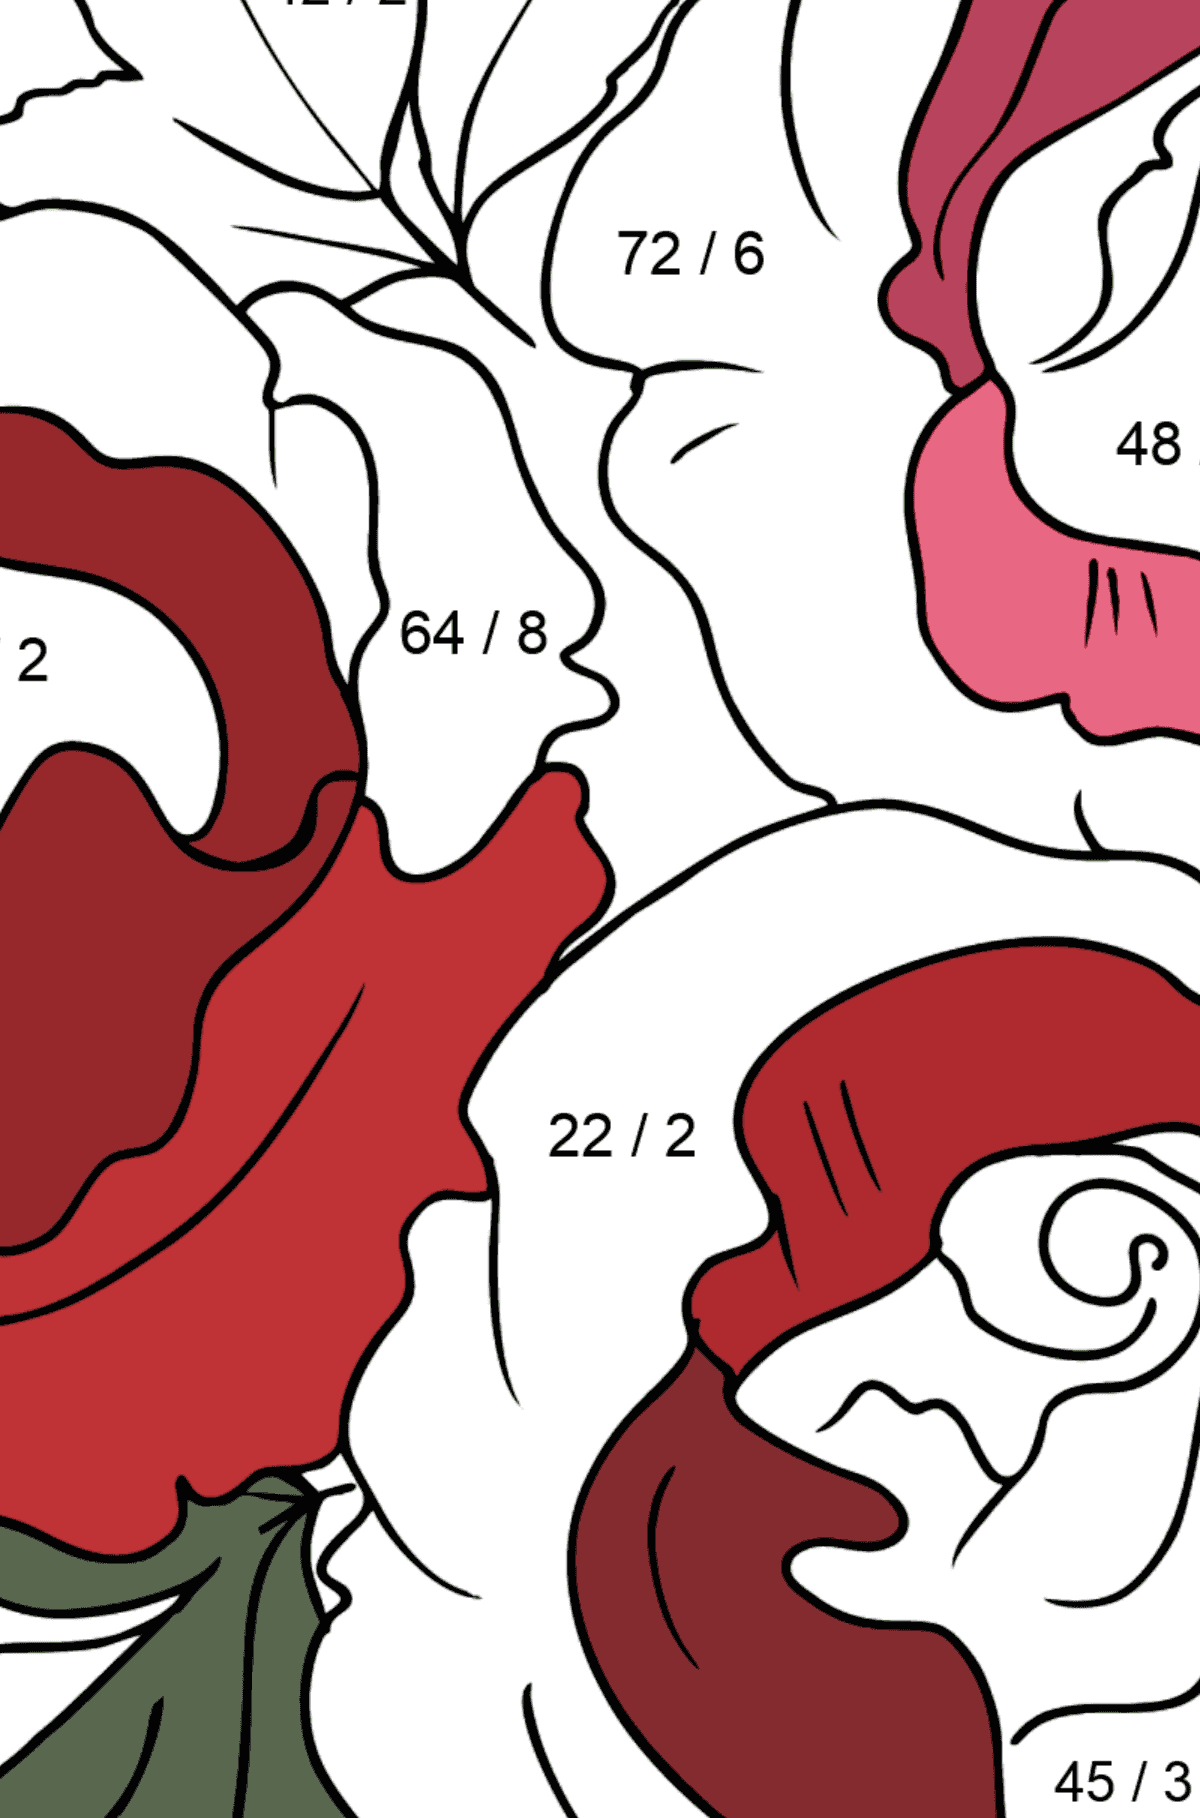 Roses Coloring Page - Math Coloring - Division for Kids